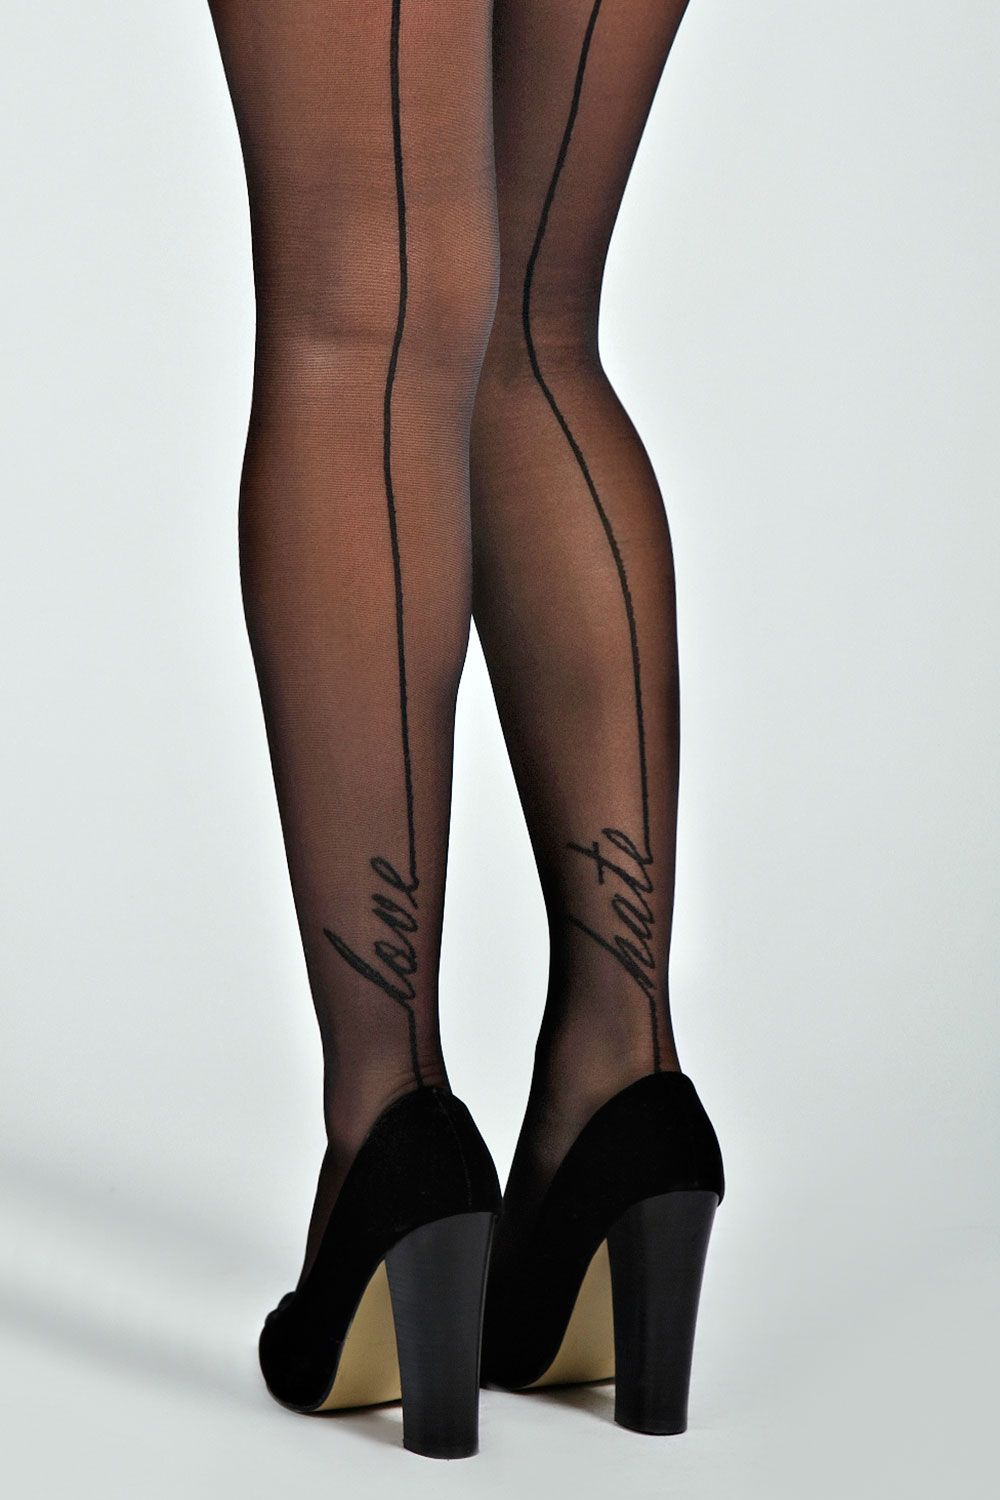 b3f205f2f Cara Love   Hate Sheer Seamed Tights at boohoo.com